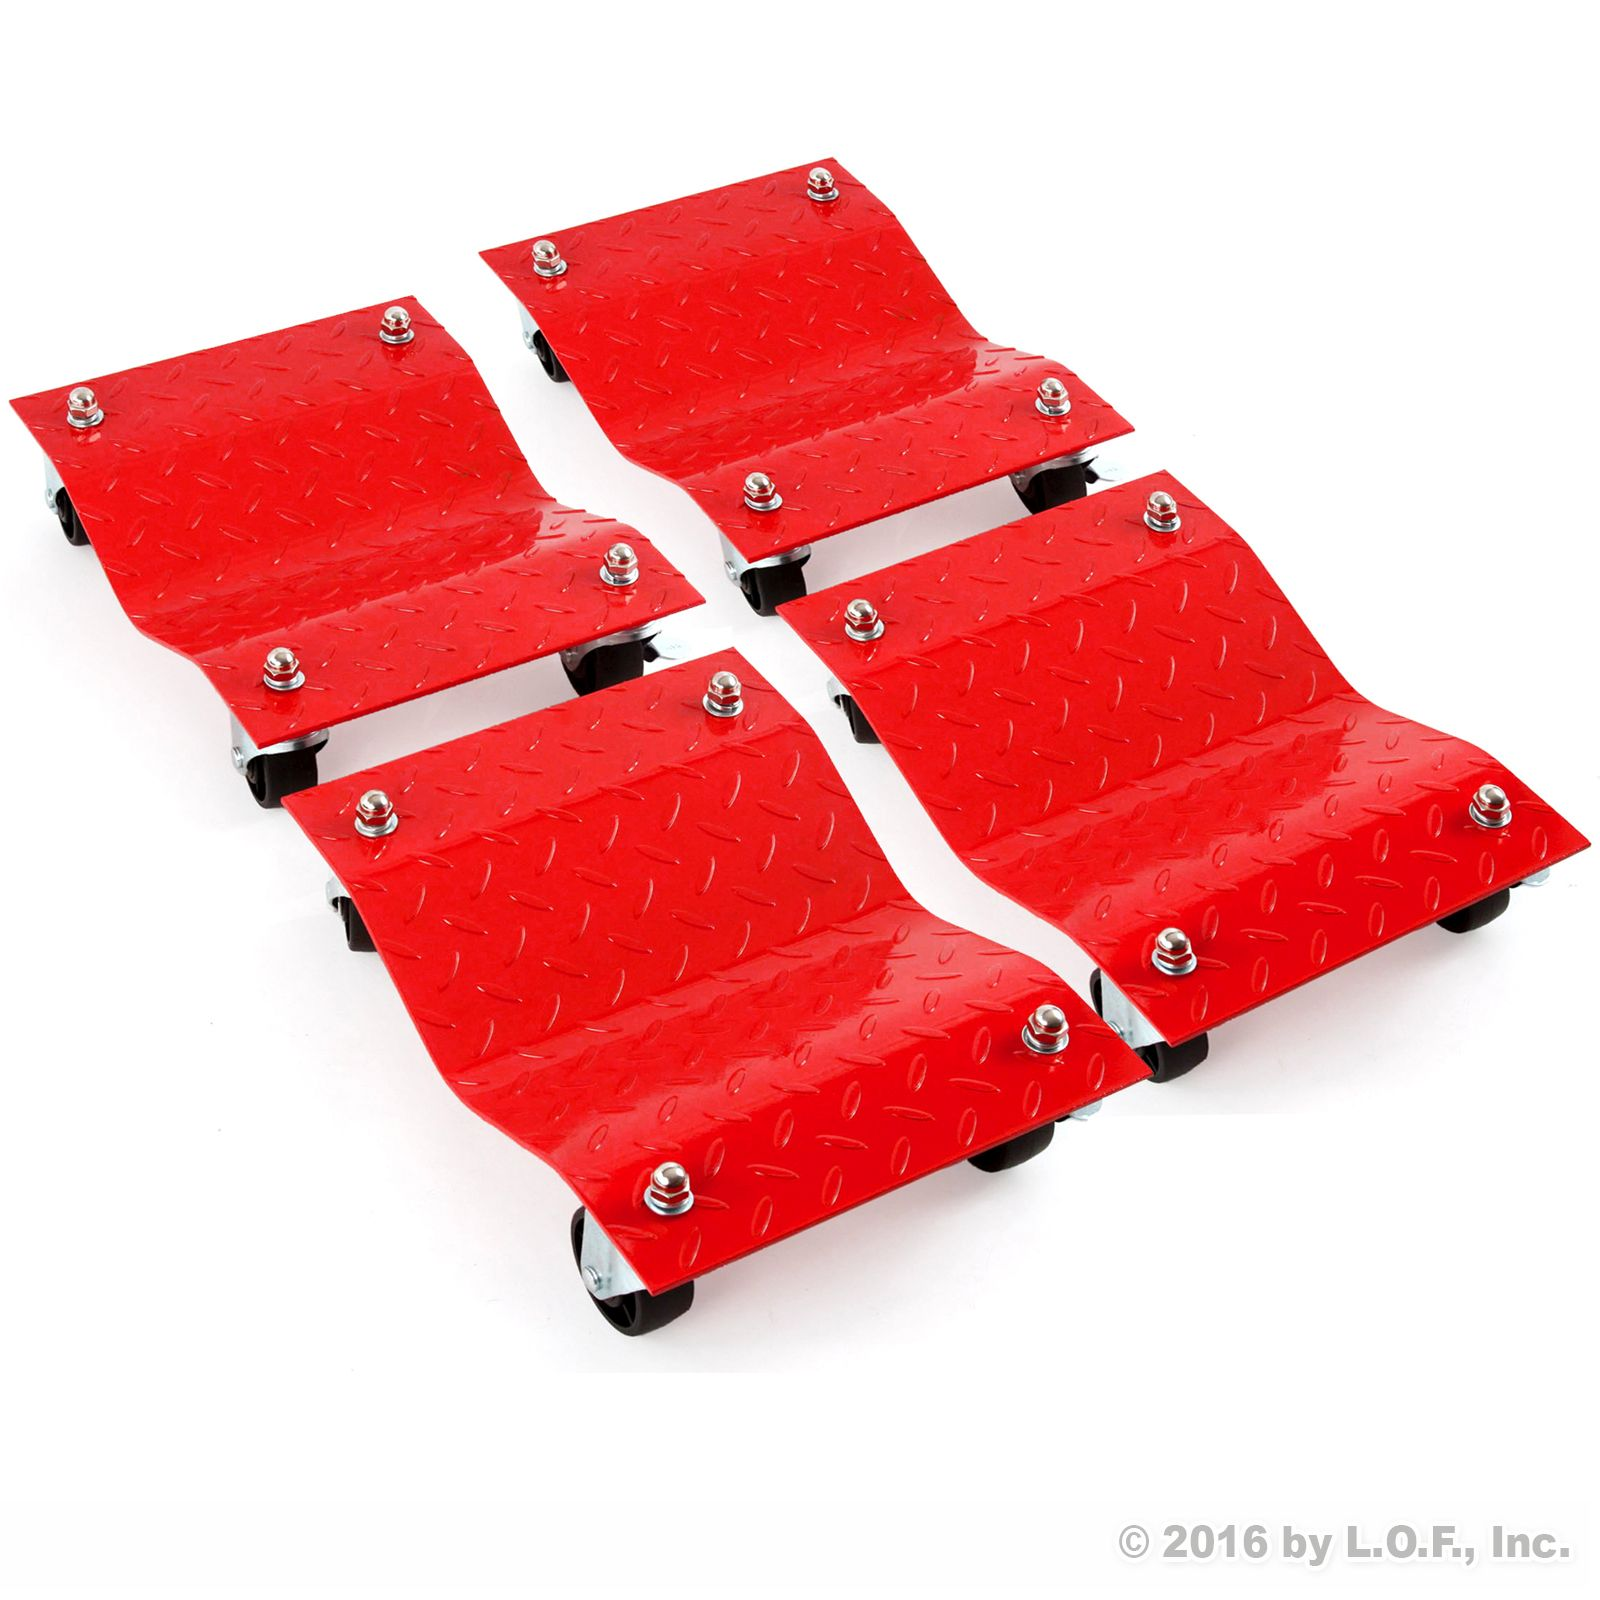 "4 - Red 12"" Tire Premium Skates Wheel Car Dolly Ball Bearings Skate Makes Moving A Car Easy Furniture Movers"